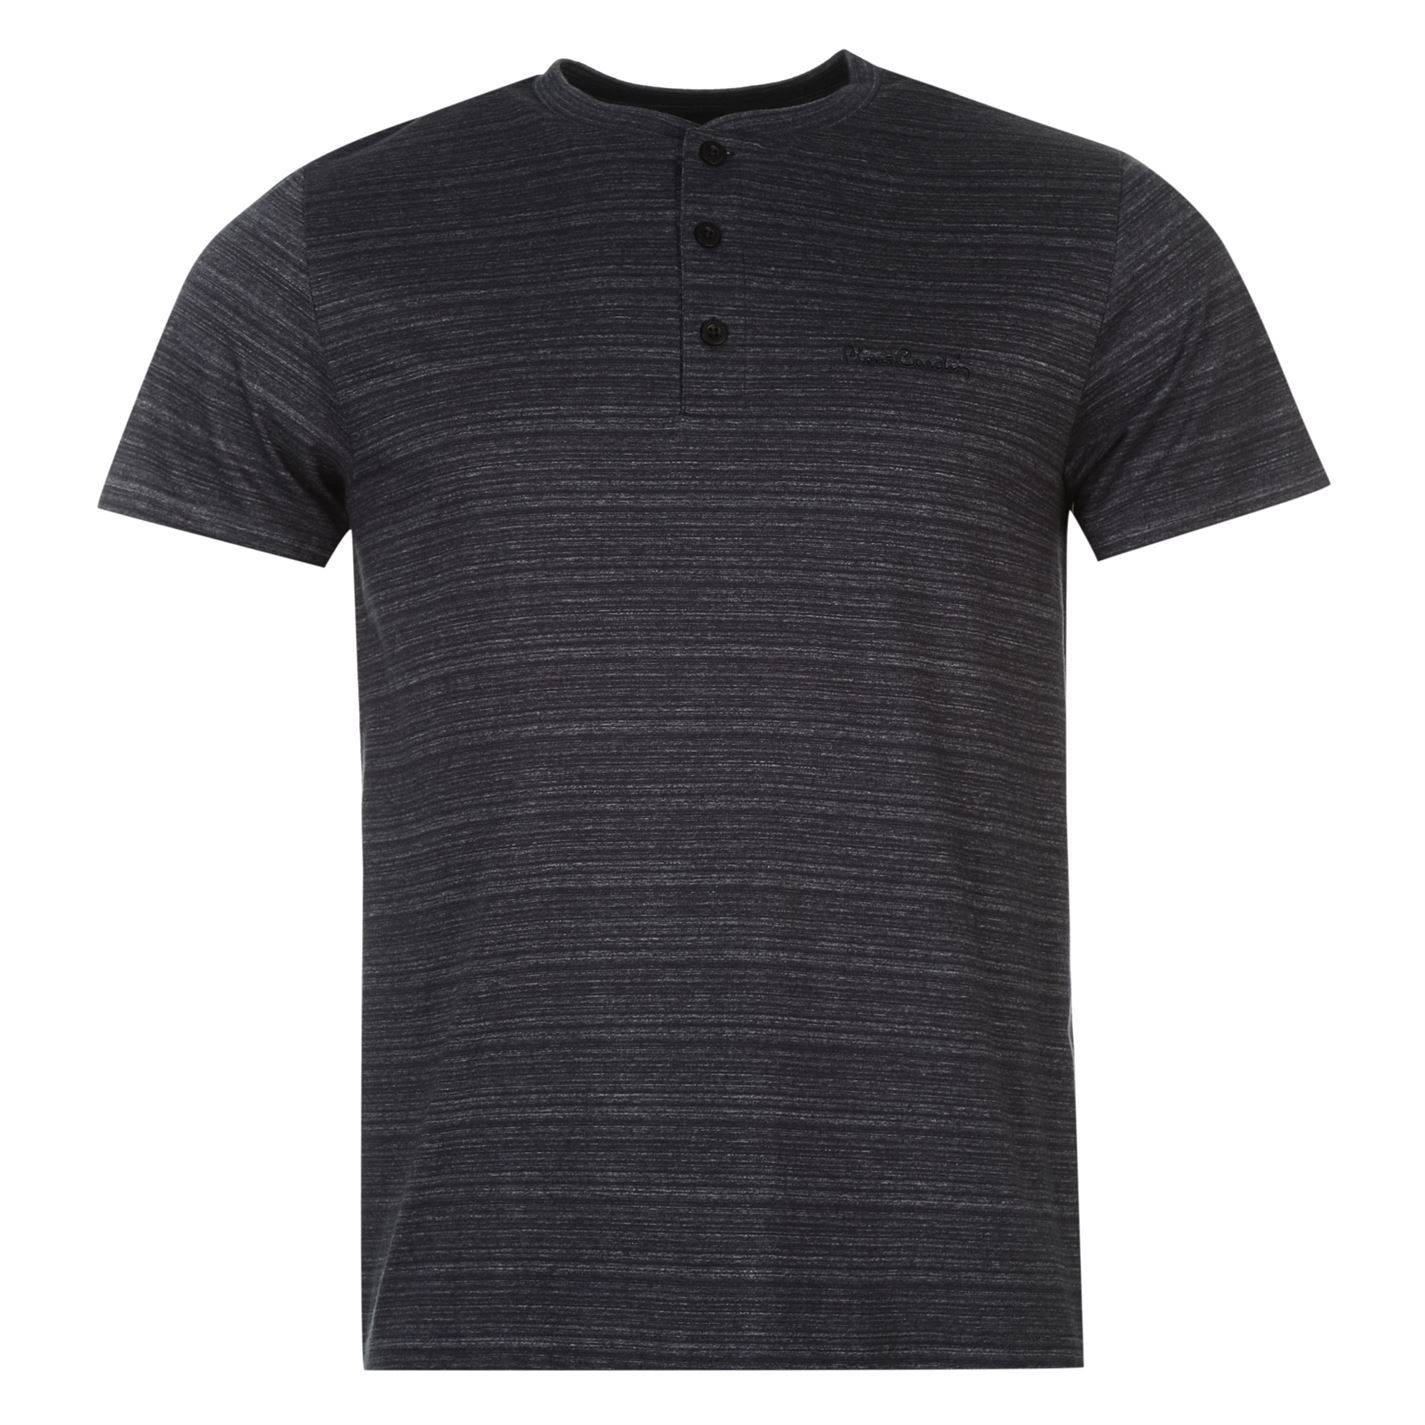 pierre cardin henley t shirt mens navy top tee shirt. Black Bedroom Furniture Sets. Home Design Ideas